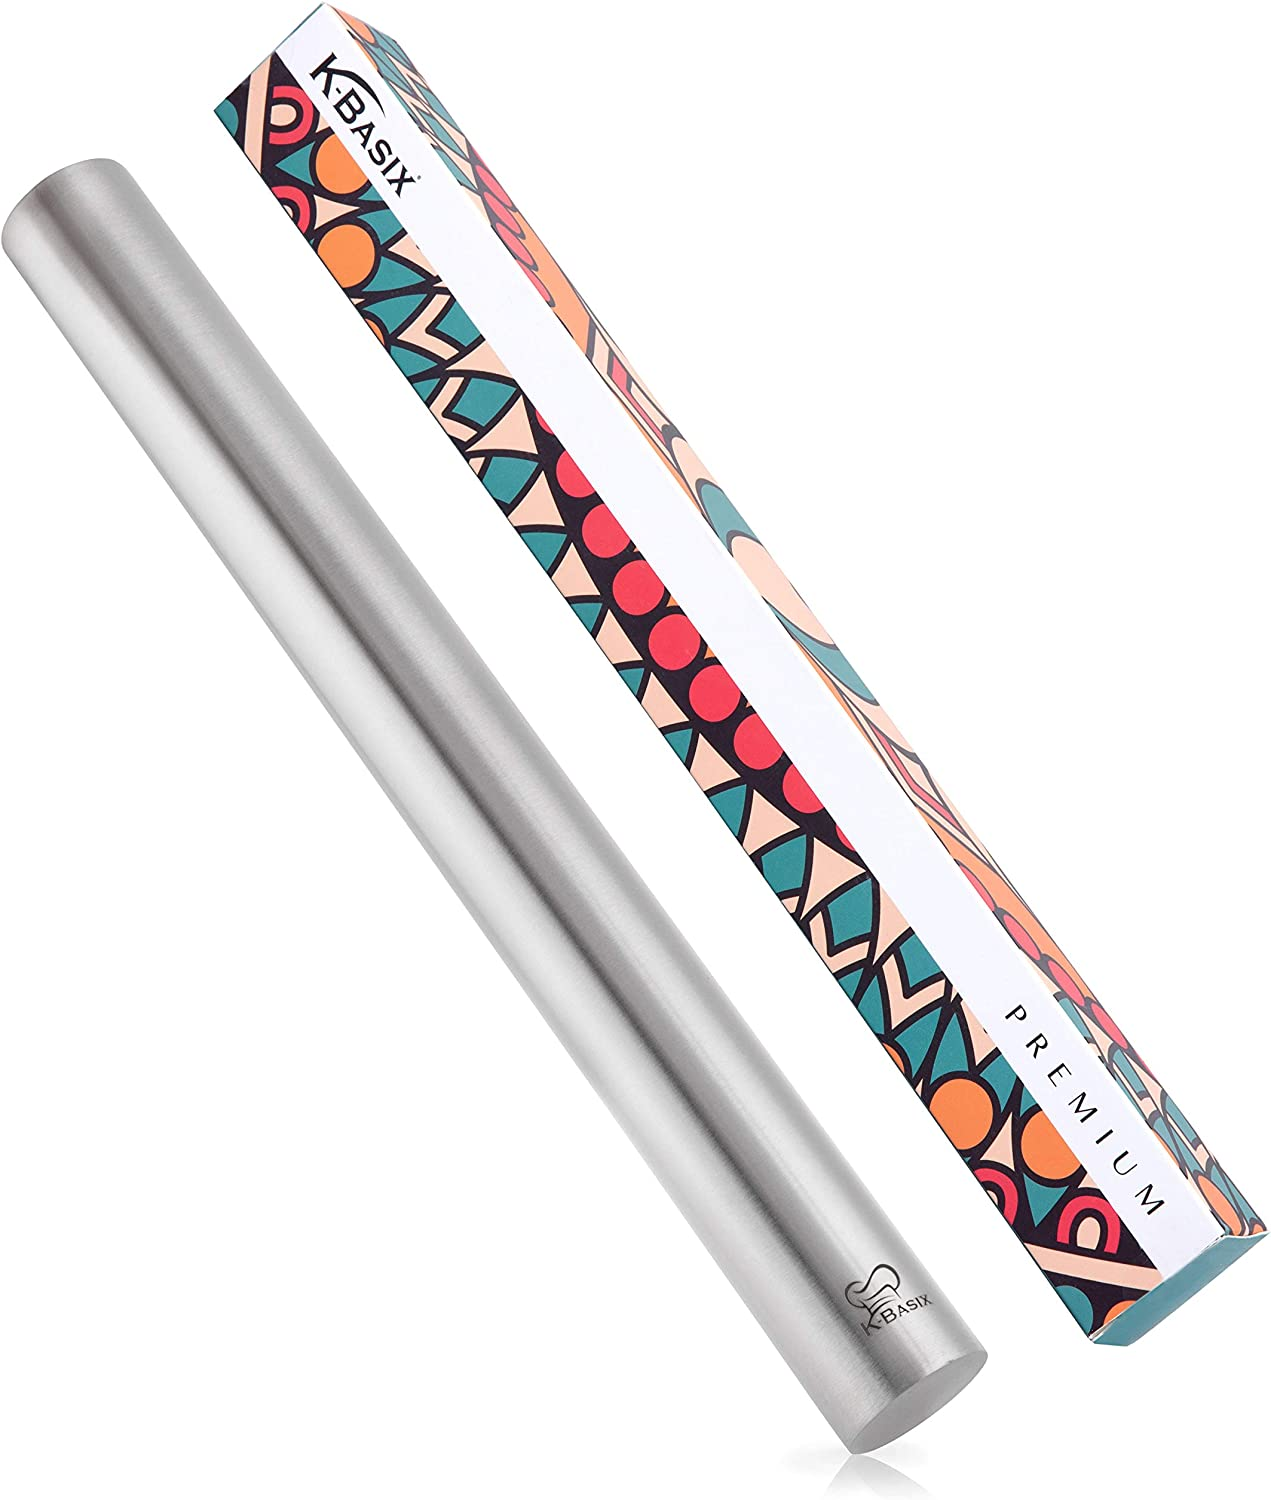 K BASIX Rolling Pin - Professional Stainless Steel Rolling Pin for Baking - Non-Stick Metal Design Best for Pizza Dough, Pie Crust, Fondant, Pastry & Pasta!!